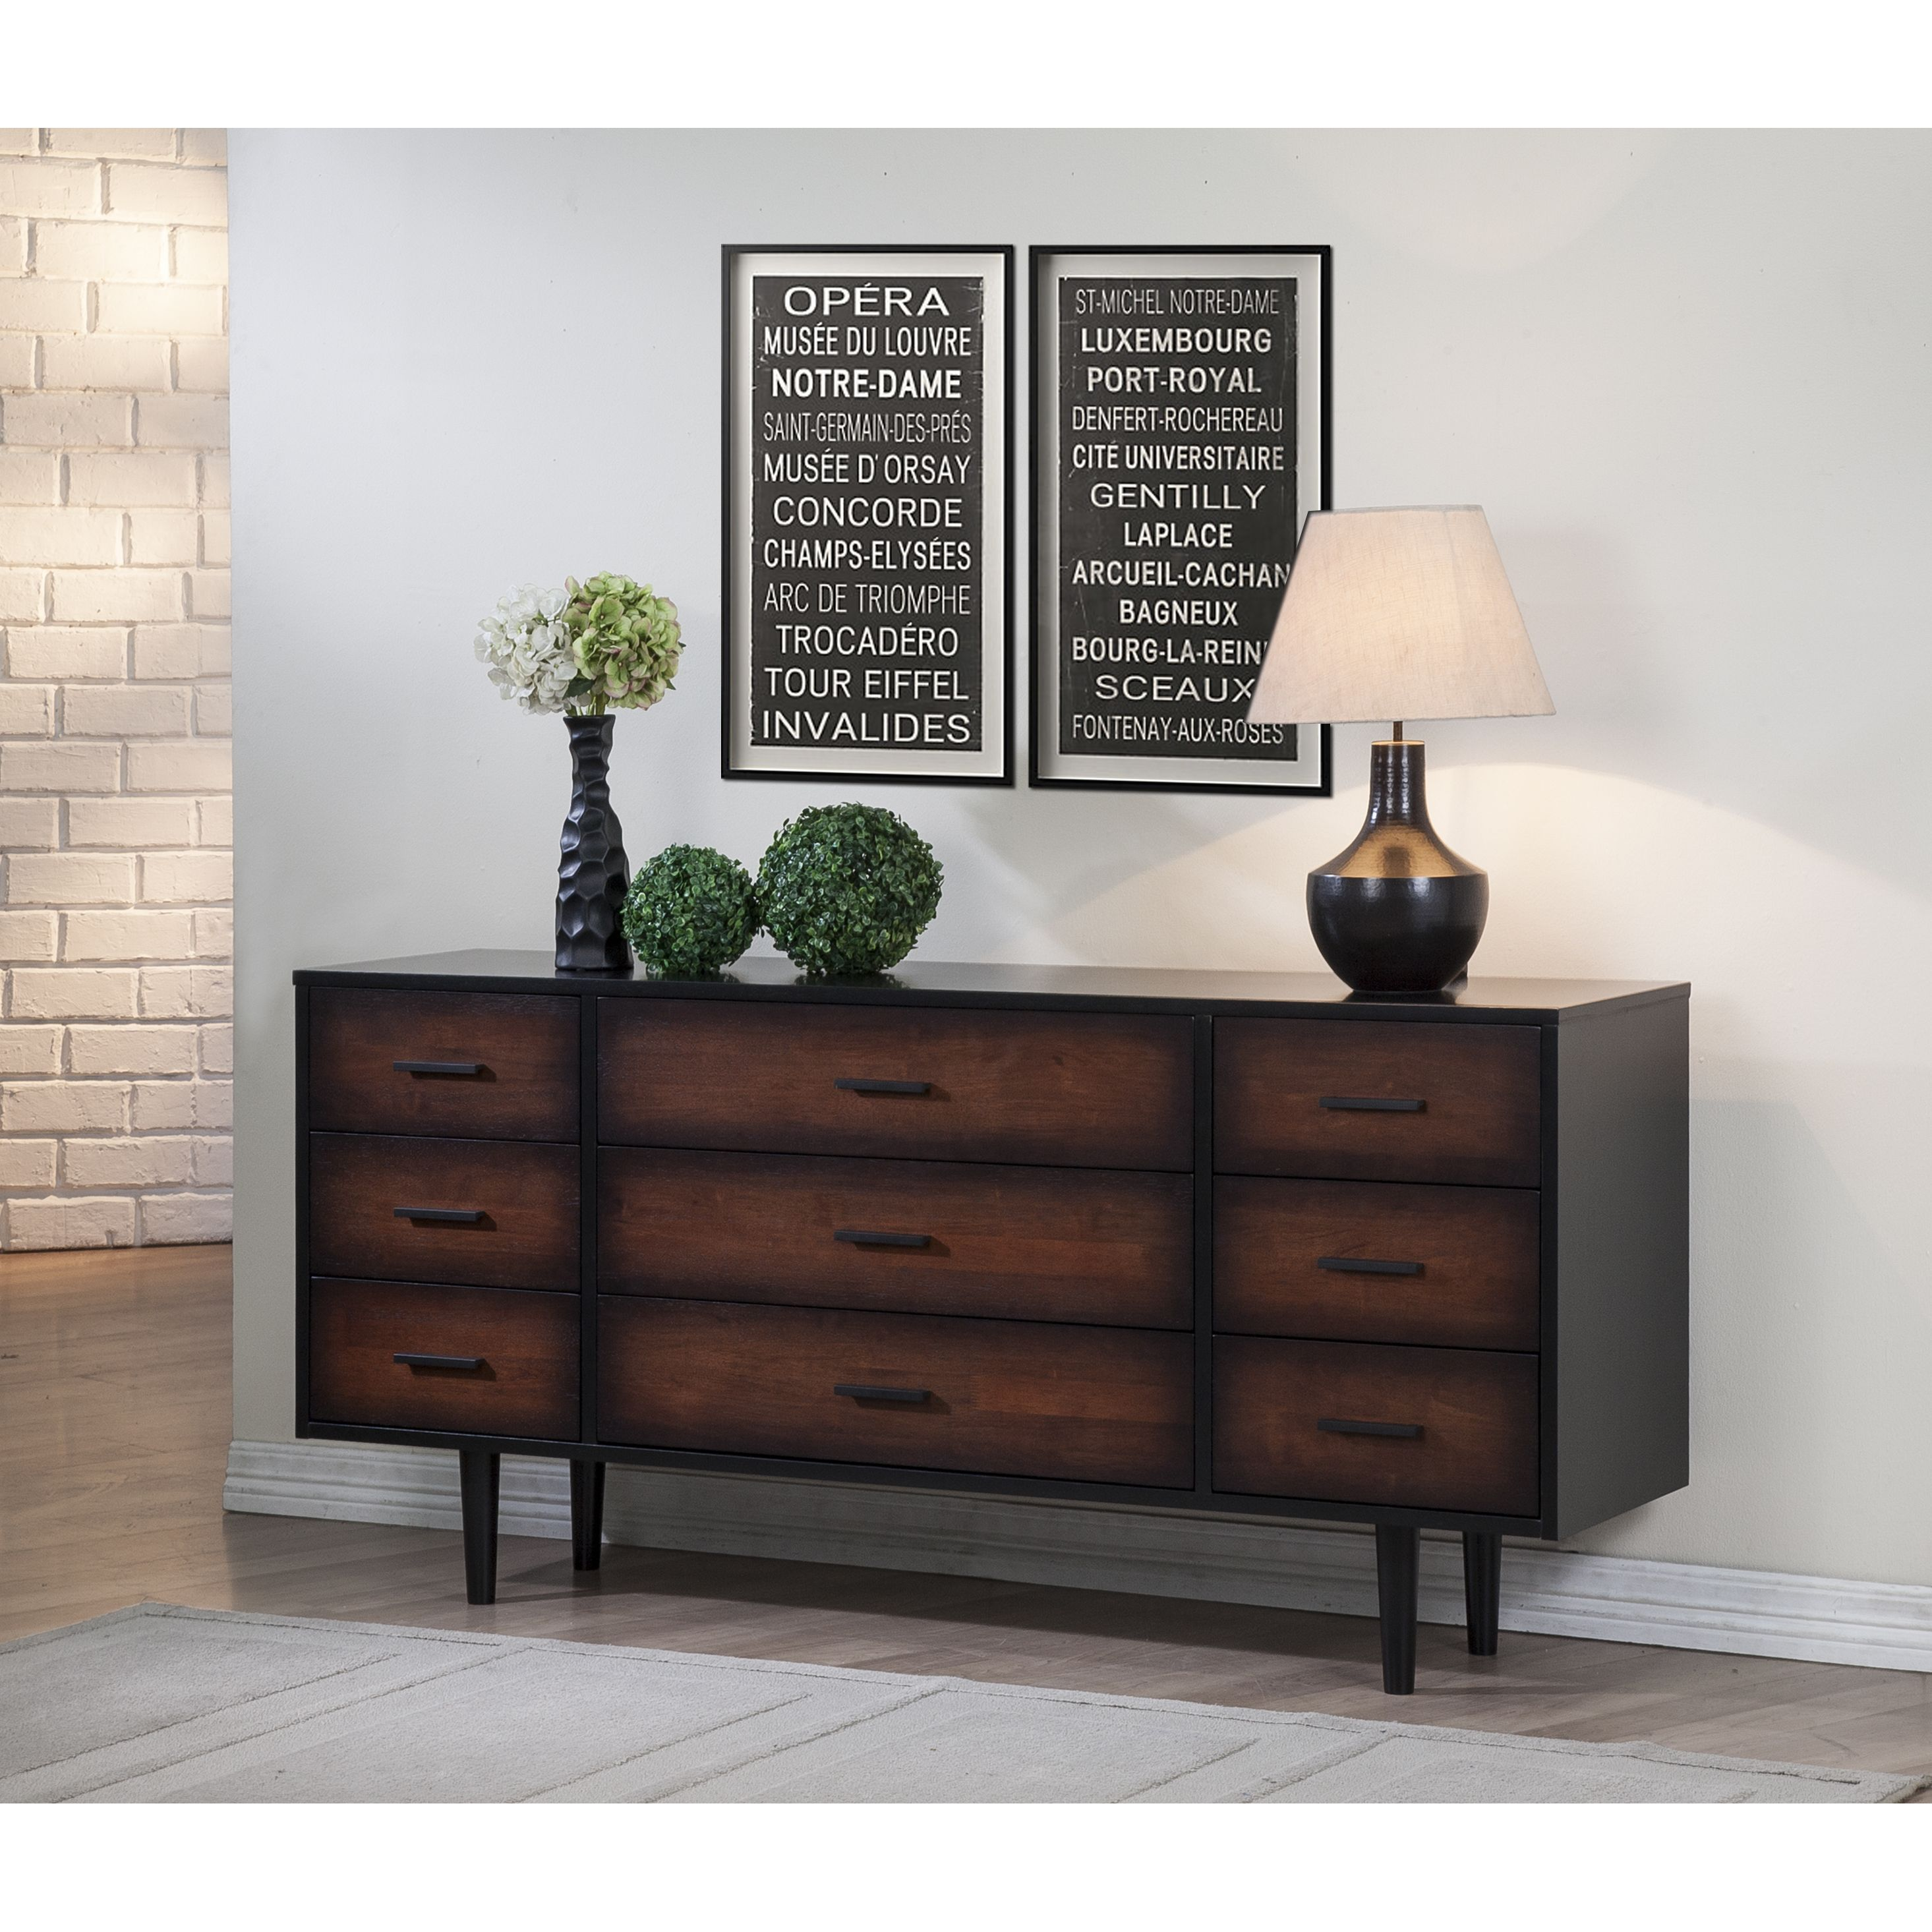 Modern Antique Traditional Modern Style Cherry Oak 9pc: With A Lovely Finish Of Deep Black That Fades Into A